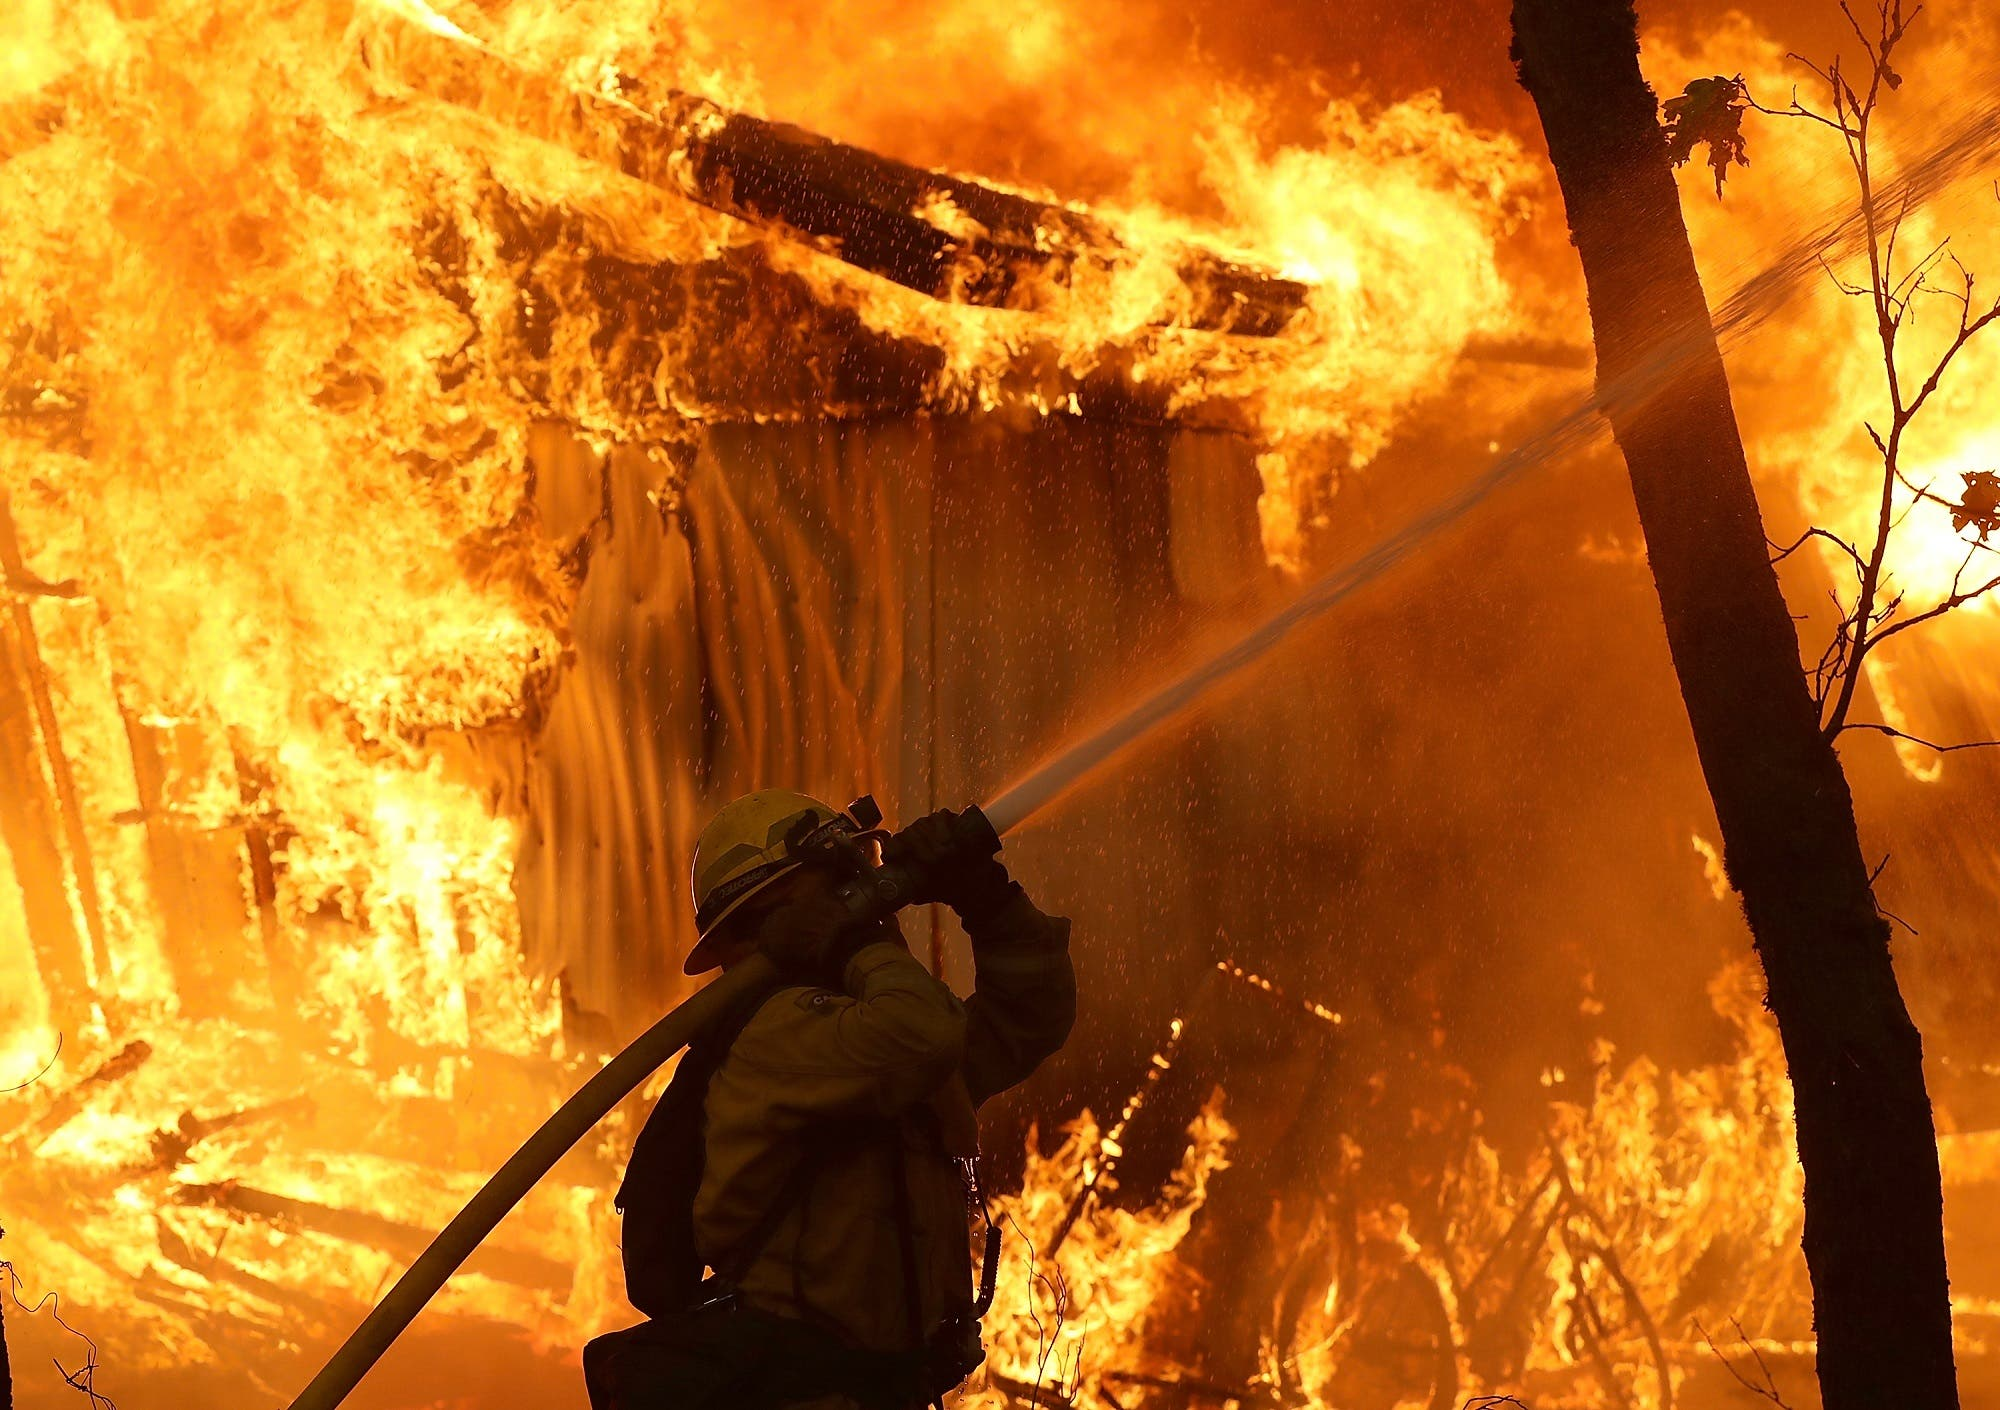 Death toll in Northern California rises to 23 as wildfires ravage state AFP